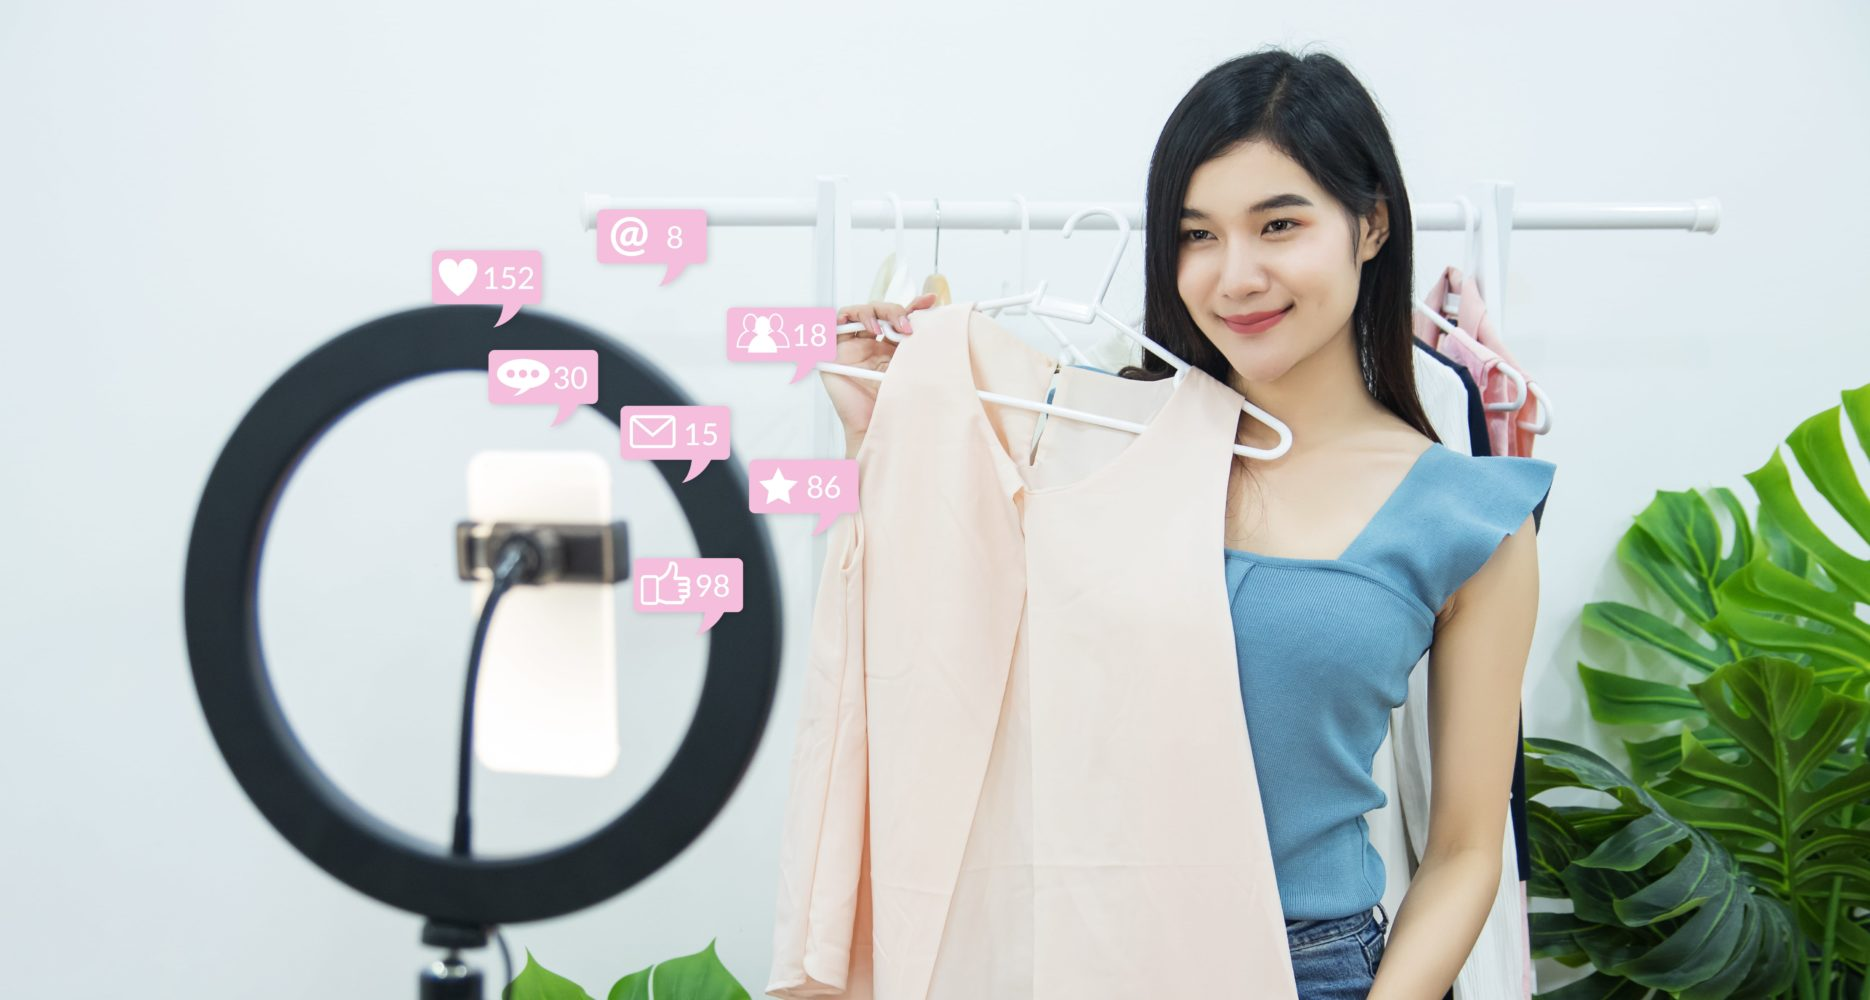 Growth in e-commerce livestreaming in China